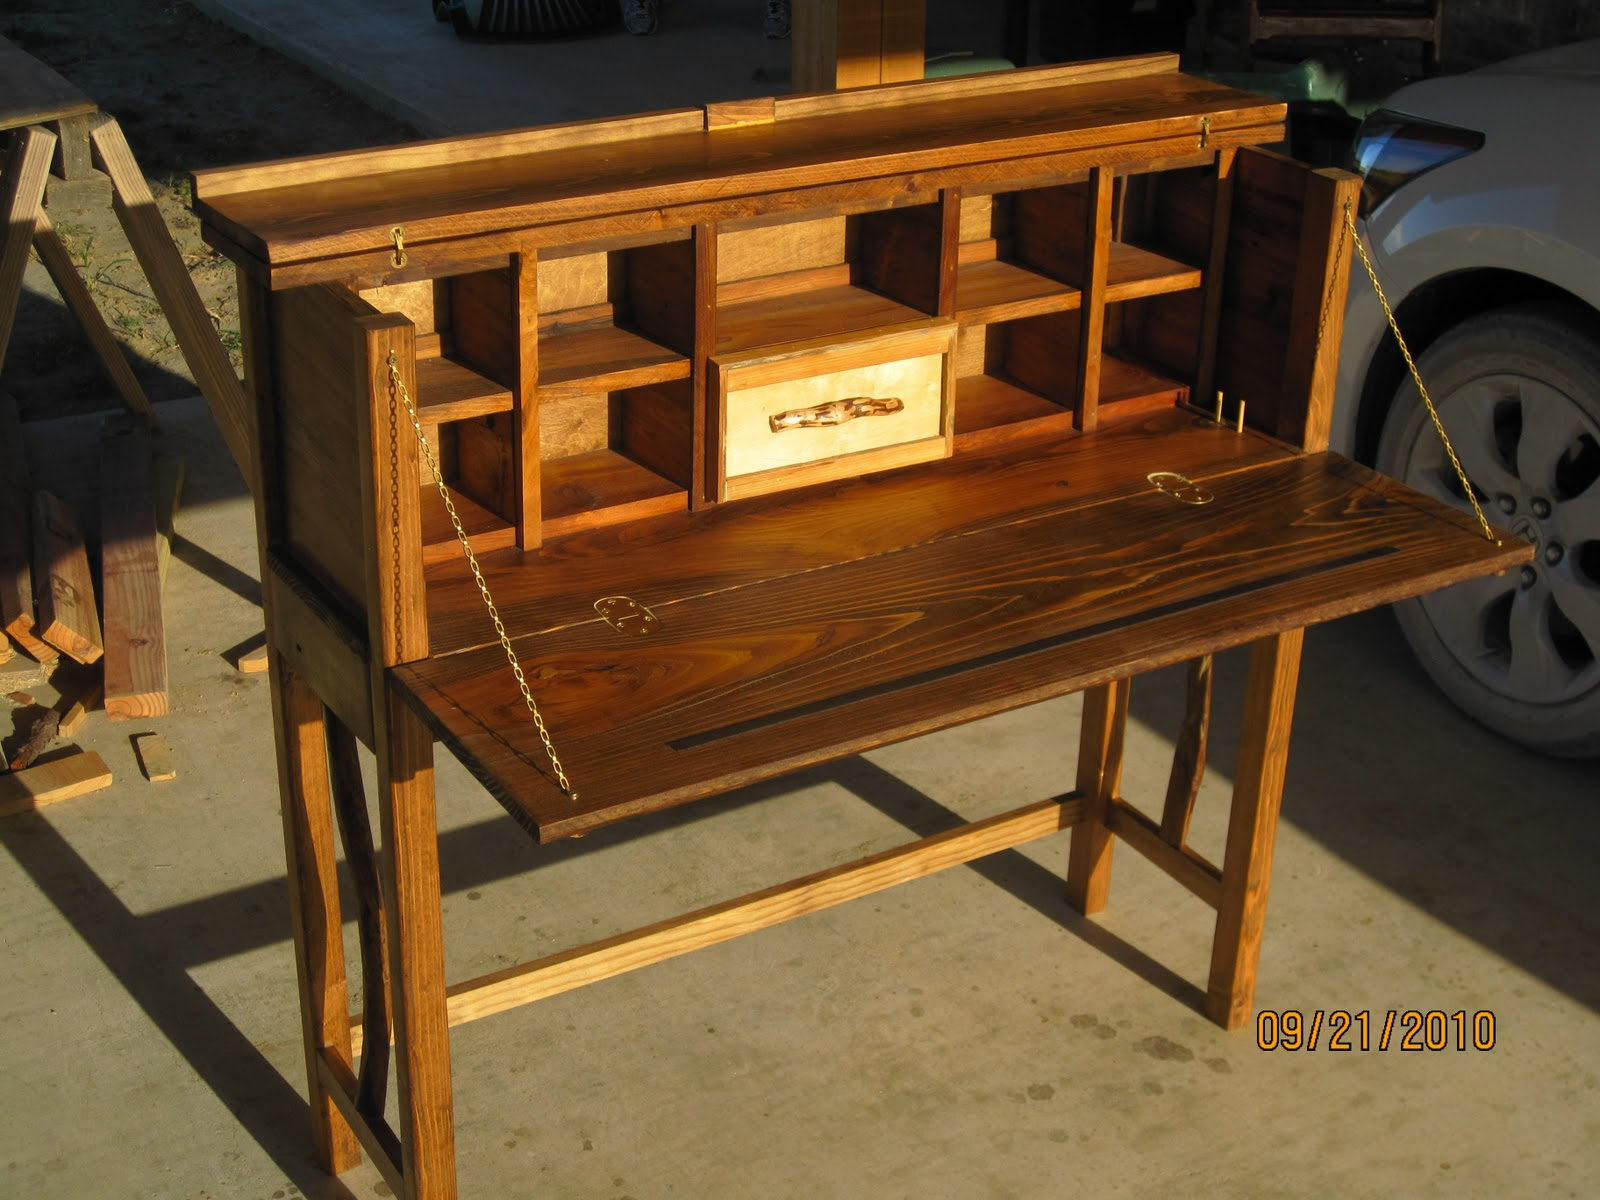 The Soap Box Blogs Build your own furniture It s addicting